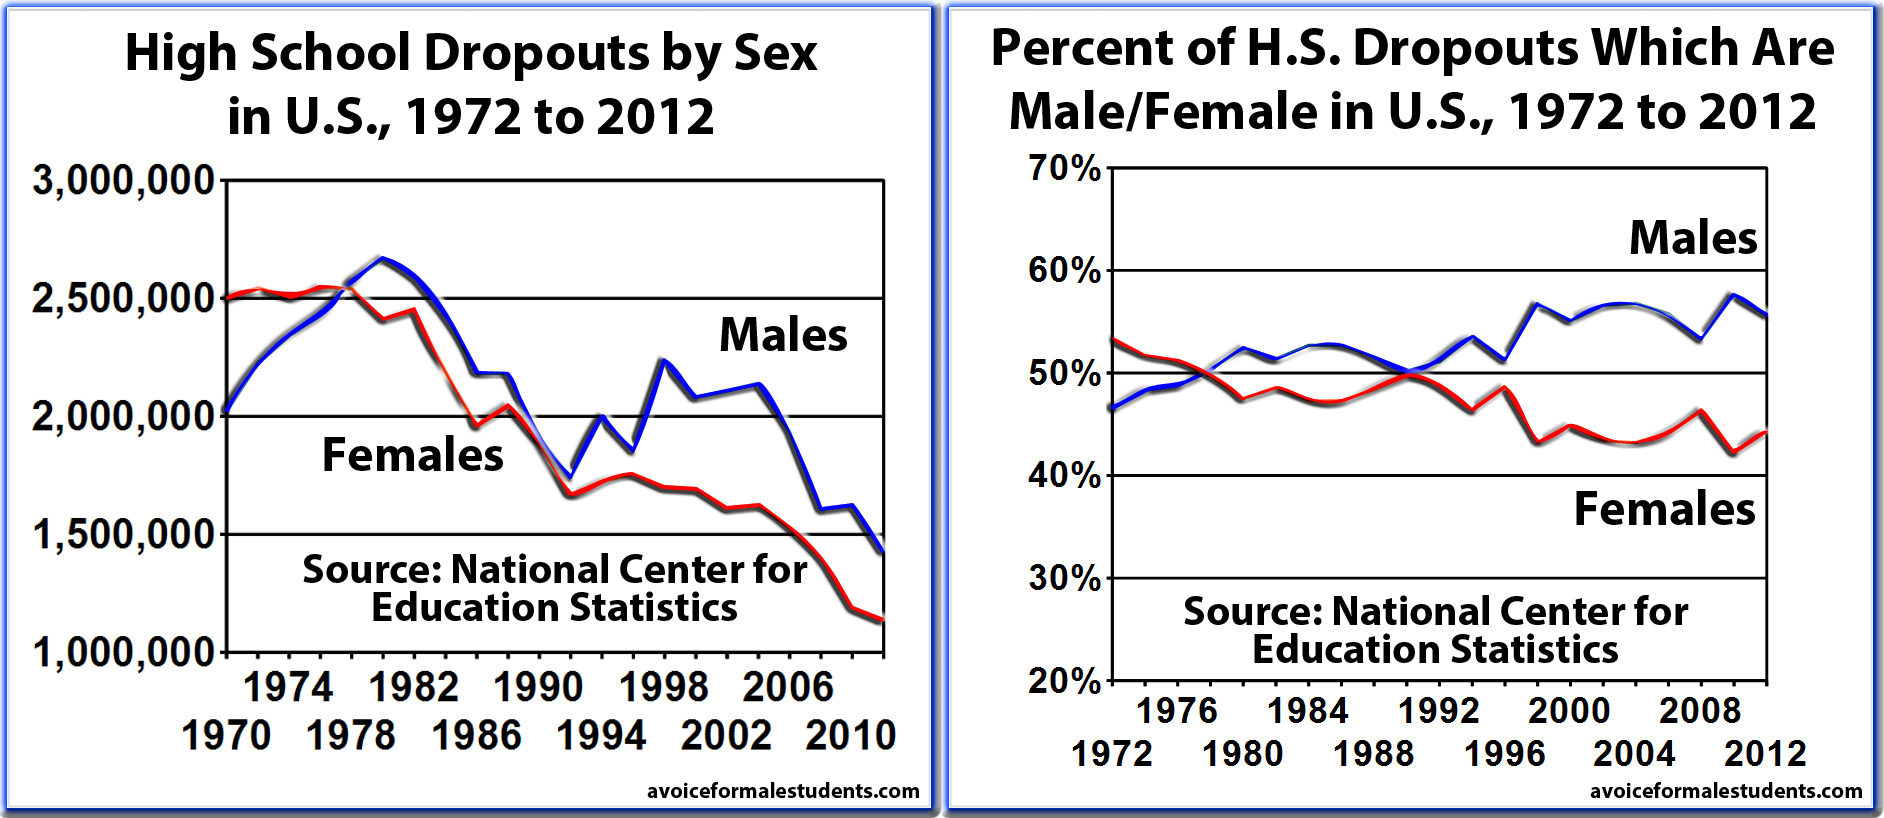 index of wp content uploads 2013 10 high school dropouts by sex in us 1972 2012 in total and by percentage of difference by sex jpg